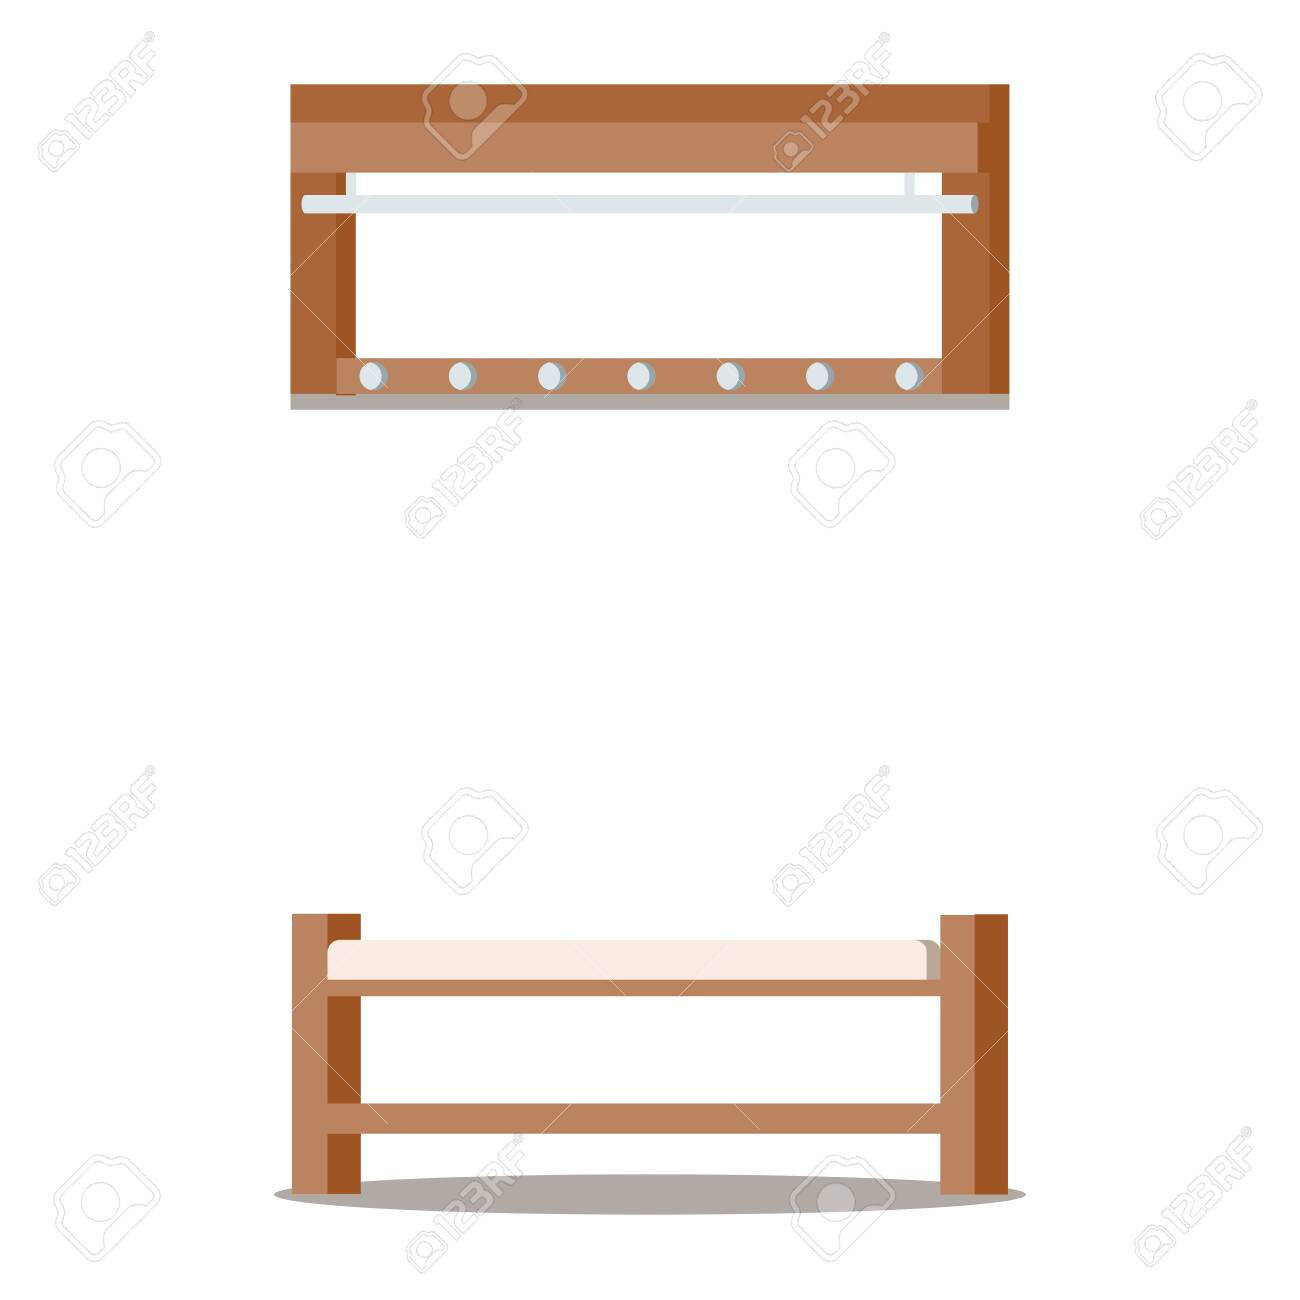 Furniture for cozy home entrance hall interior: wooden clothes..